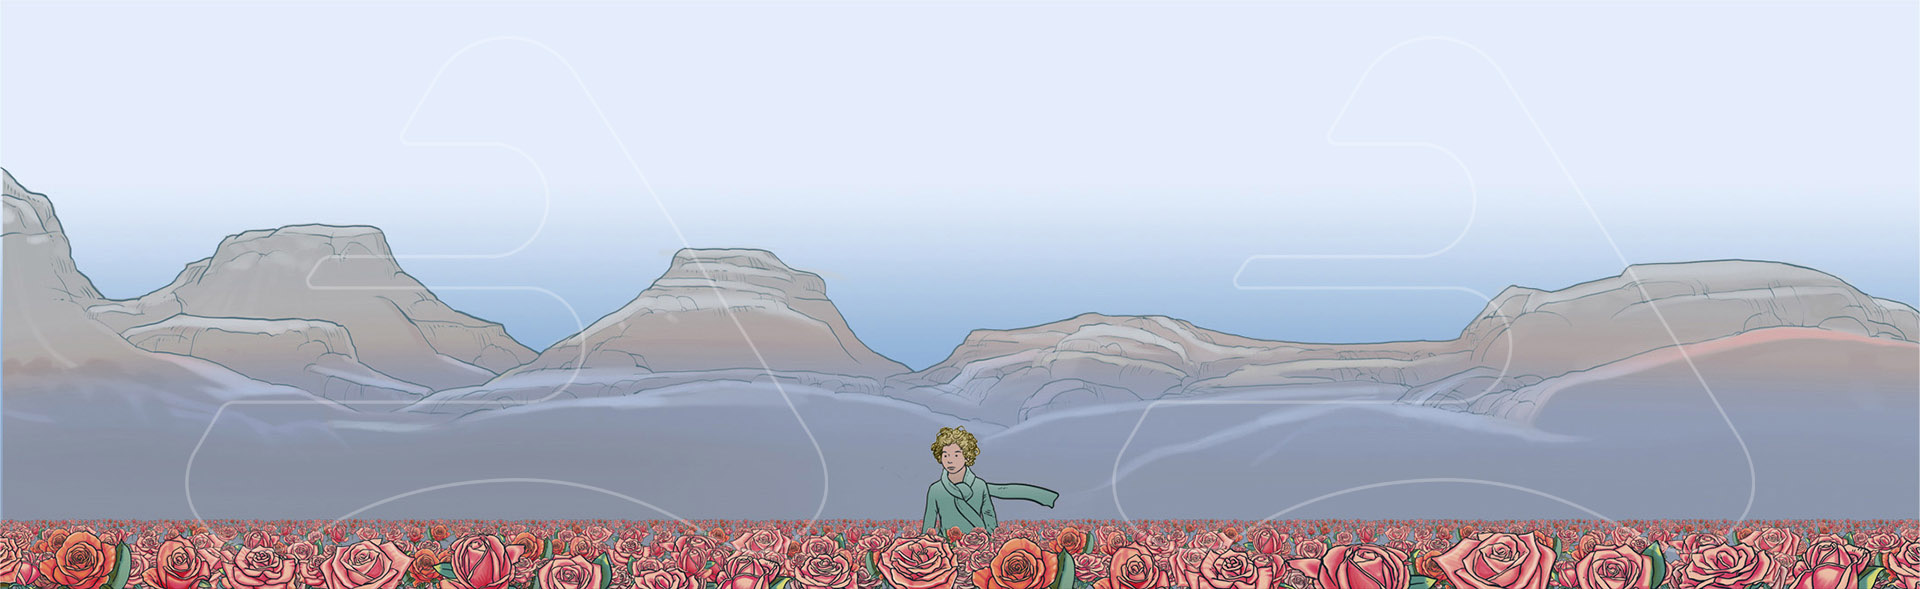 The Little Prince / Origo / Copec / Roses Field